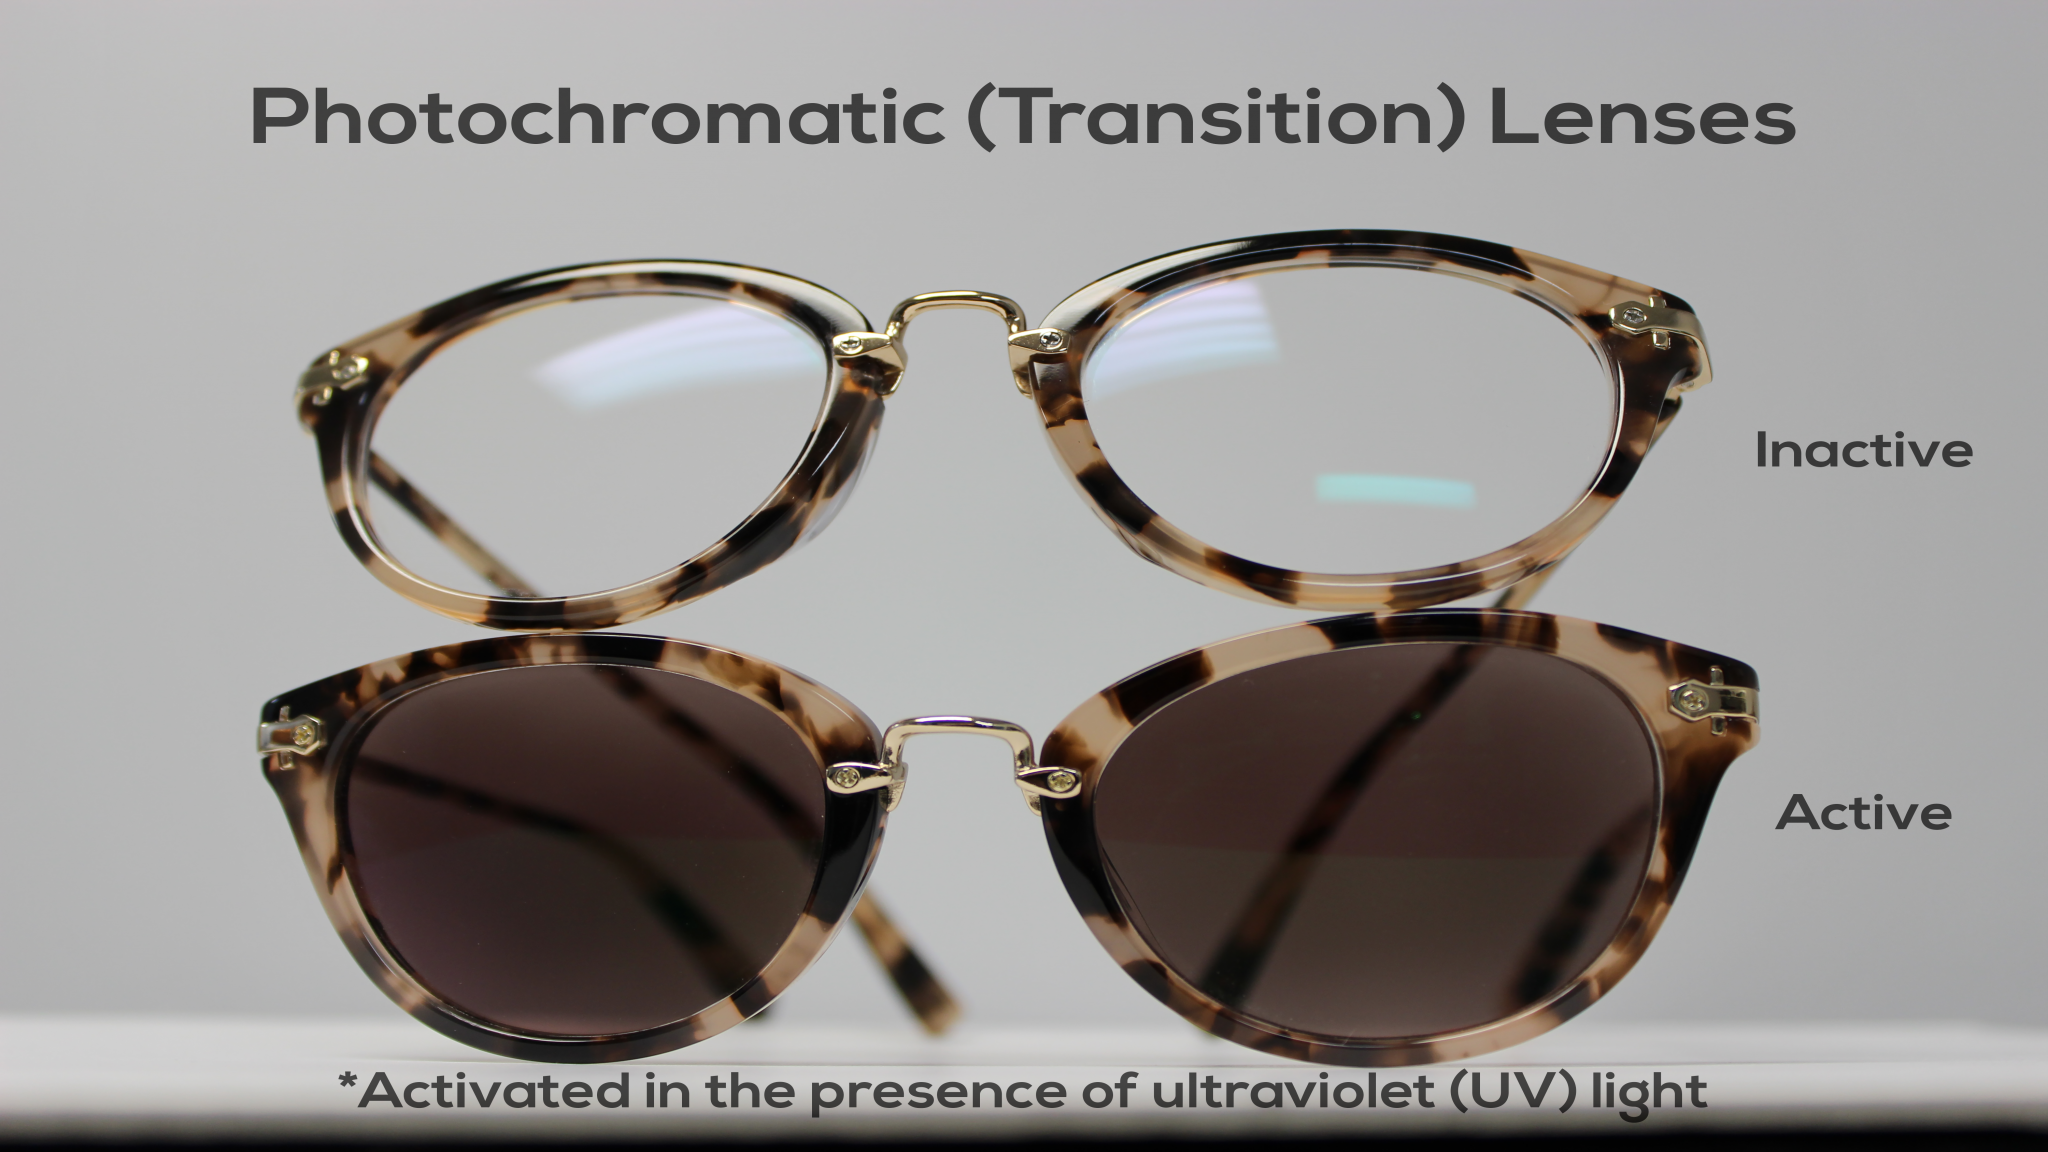 cfc04096ba Designed as lenses that turn dark like sunglasses in the presence of  (ultraviolet) sunlight